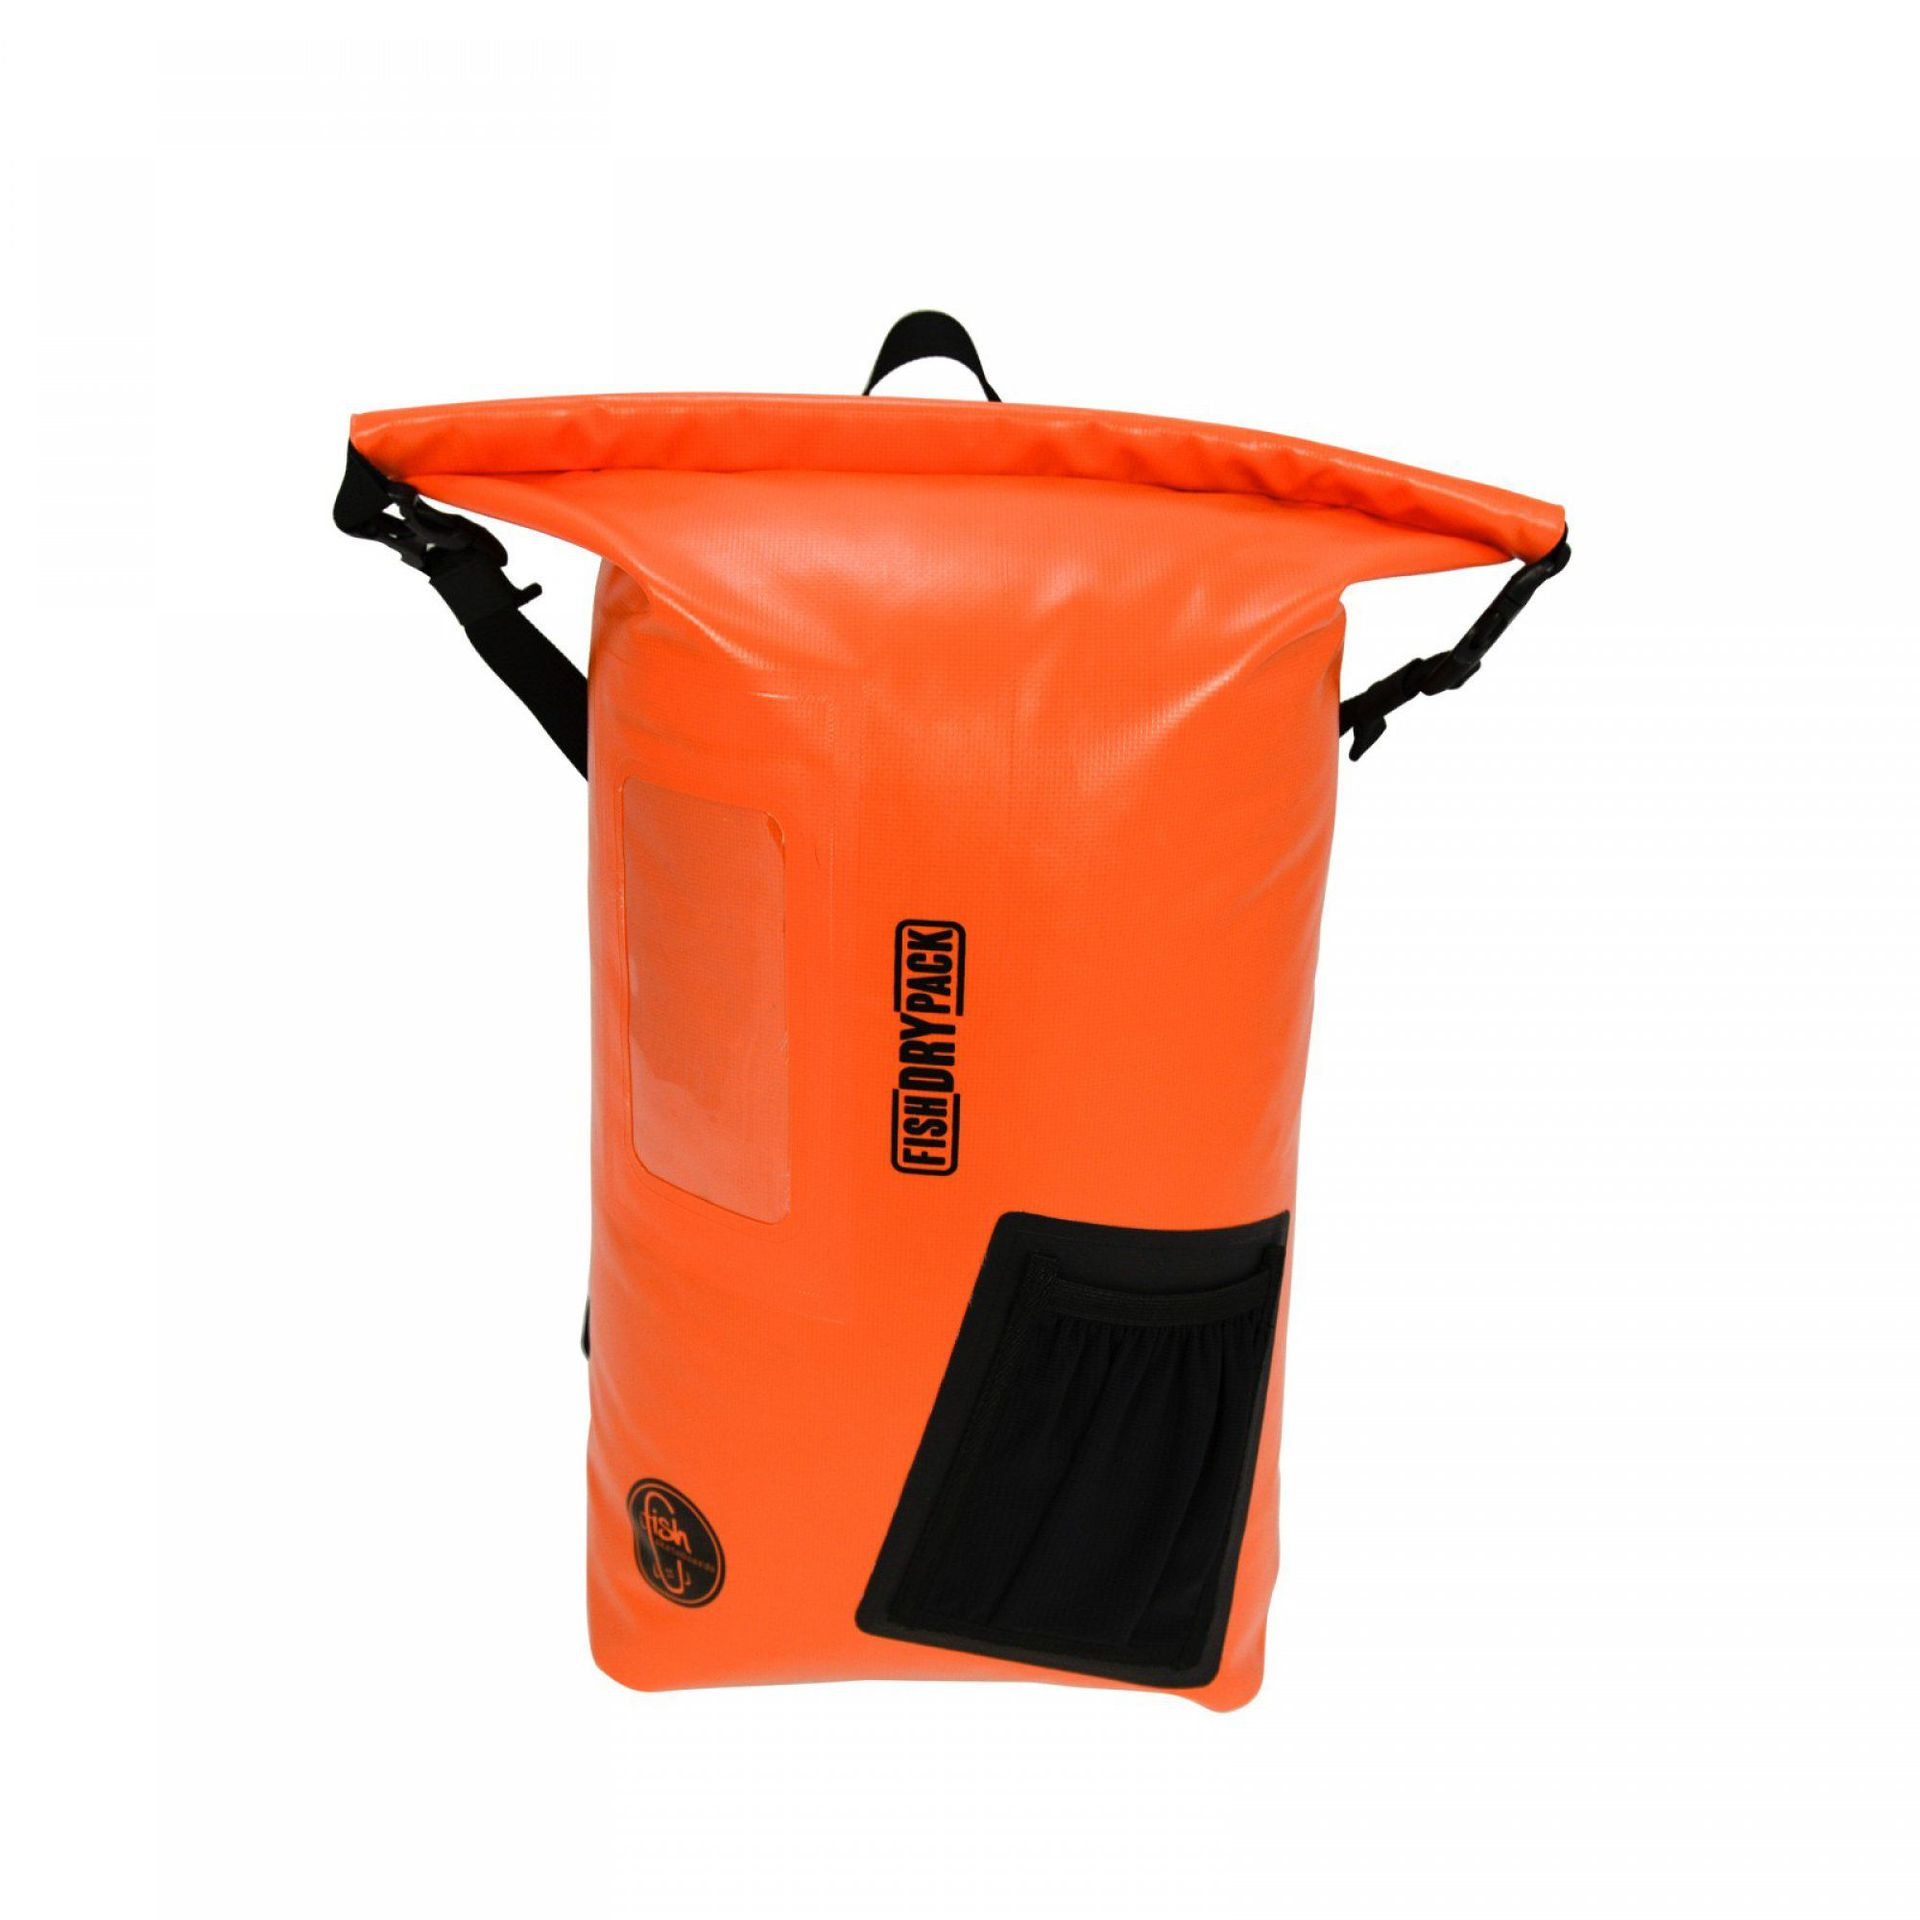 PLECAK FISH SKATEBOARDS FISH DRY PACK 18L ORANGE 5